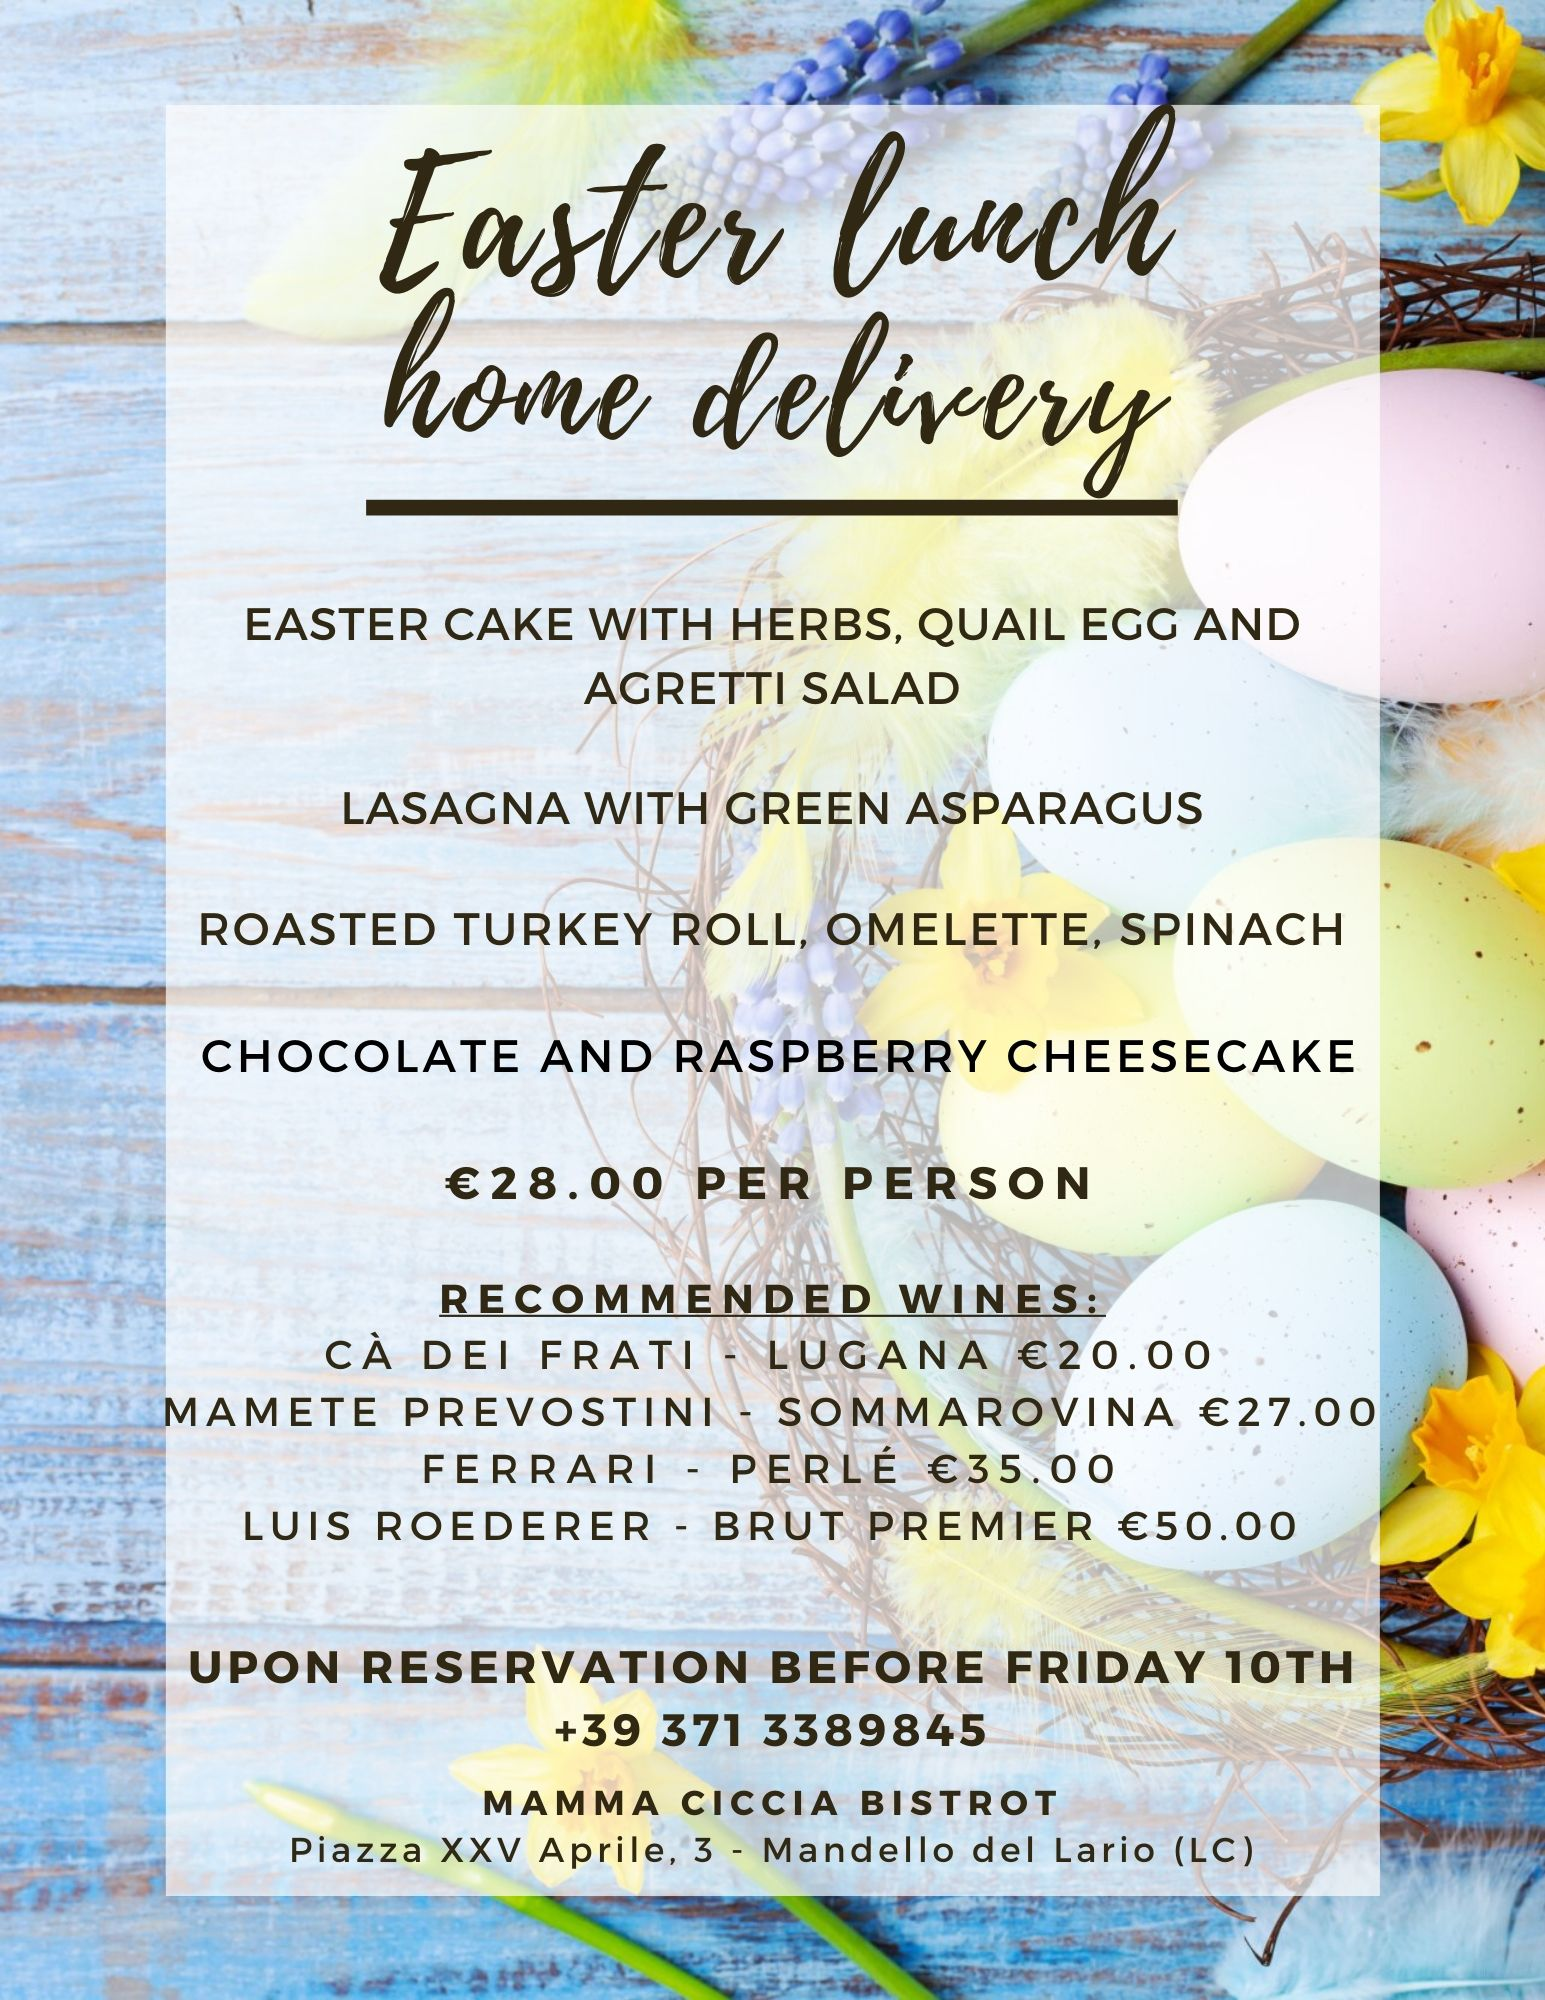 Easter lunch DELIVERY: Immagine 1